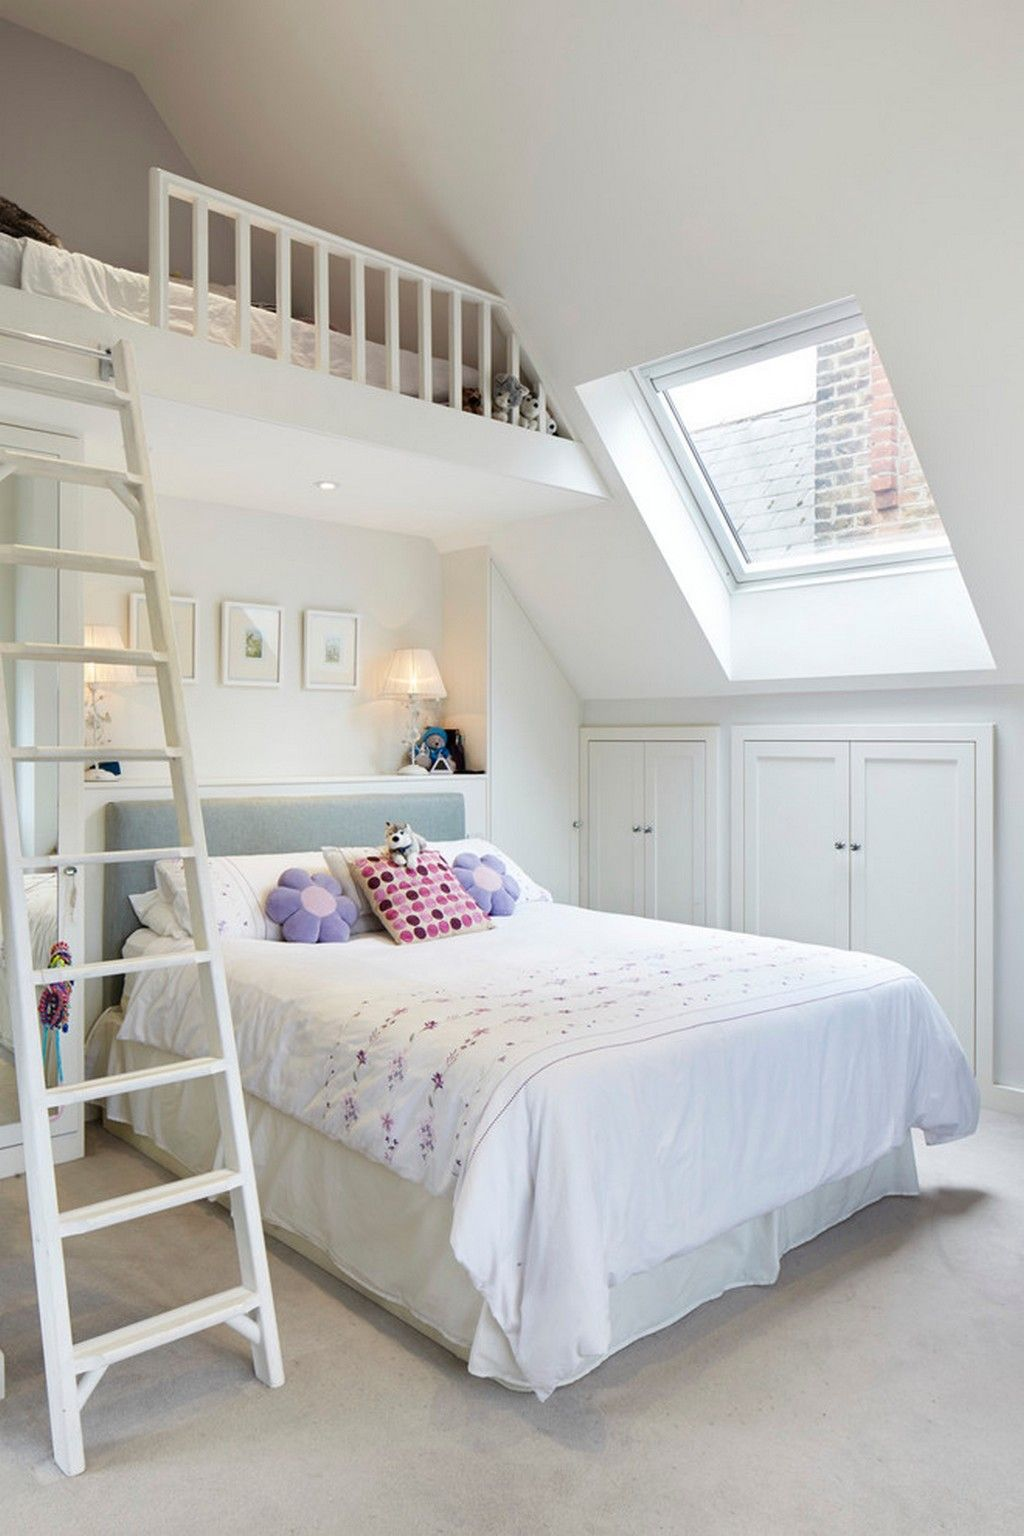 White loft bedroom ideas  Minimalist Bedroom Decorating For Young Adults Girls with White